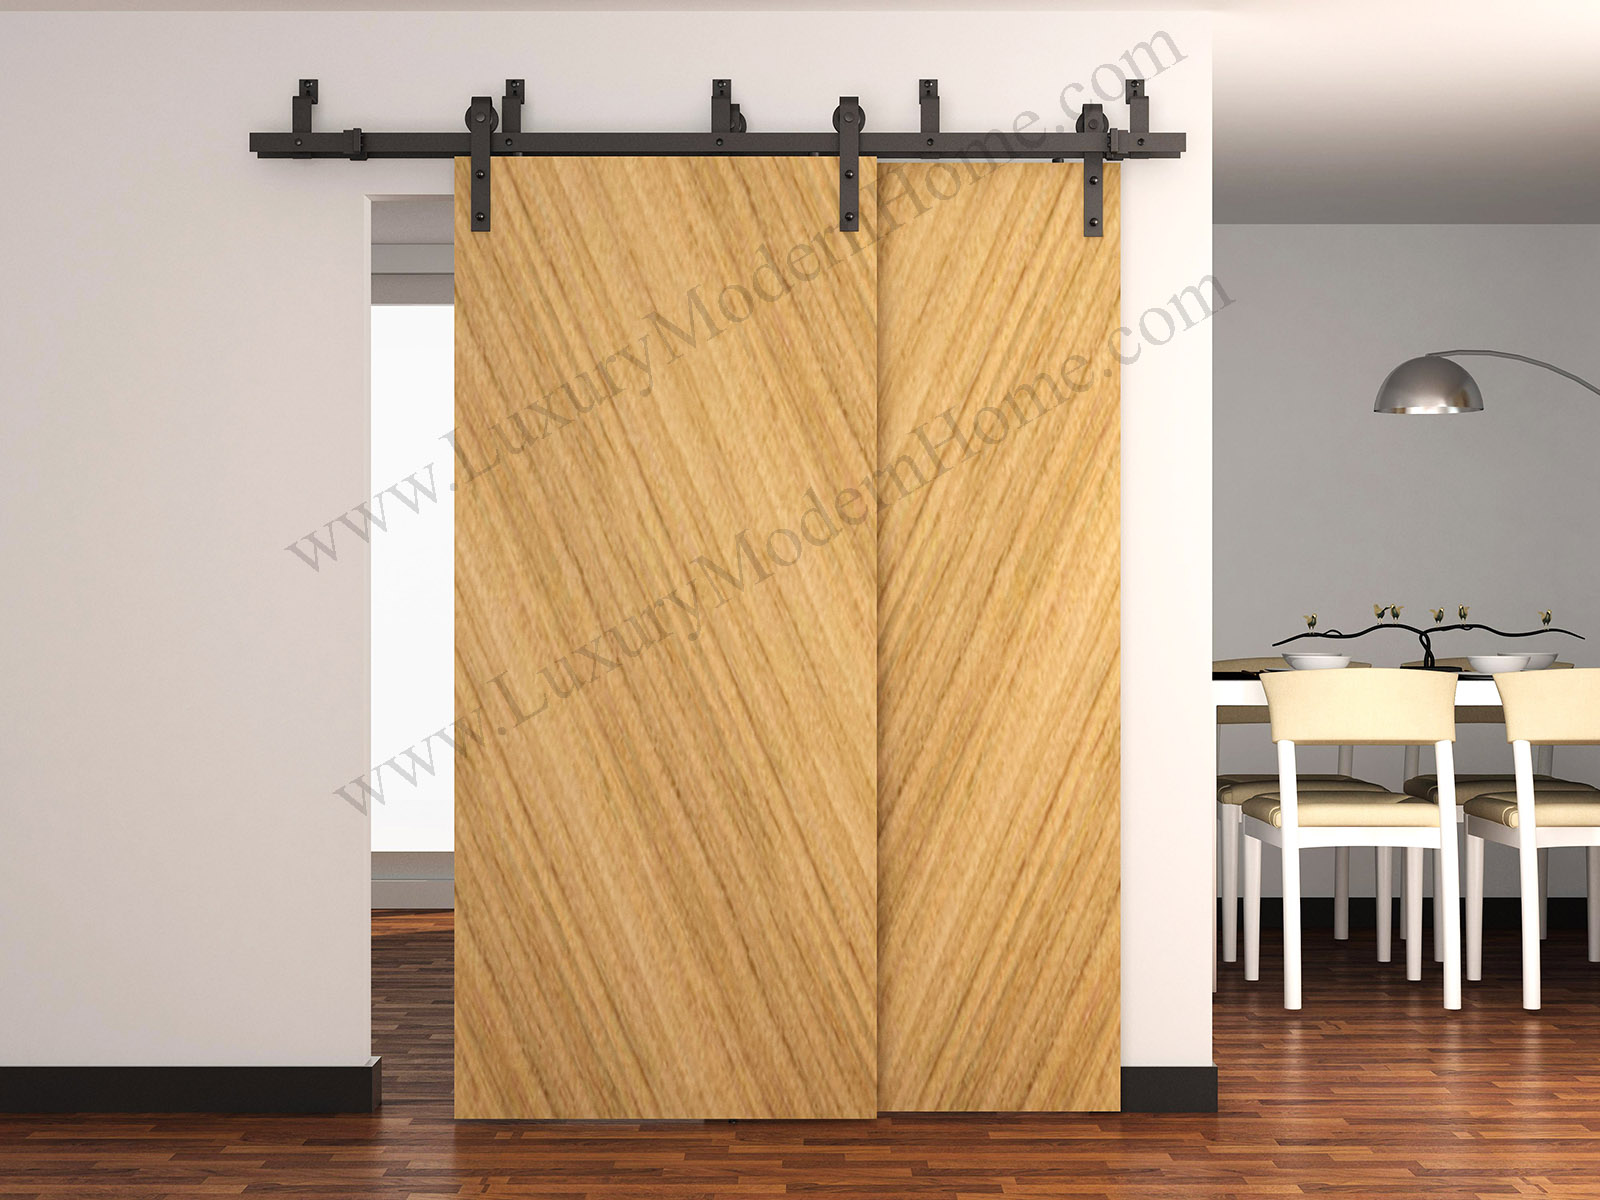 & AUSTIN - BYPASS Sliding Barn Door Hardware